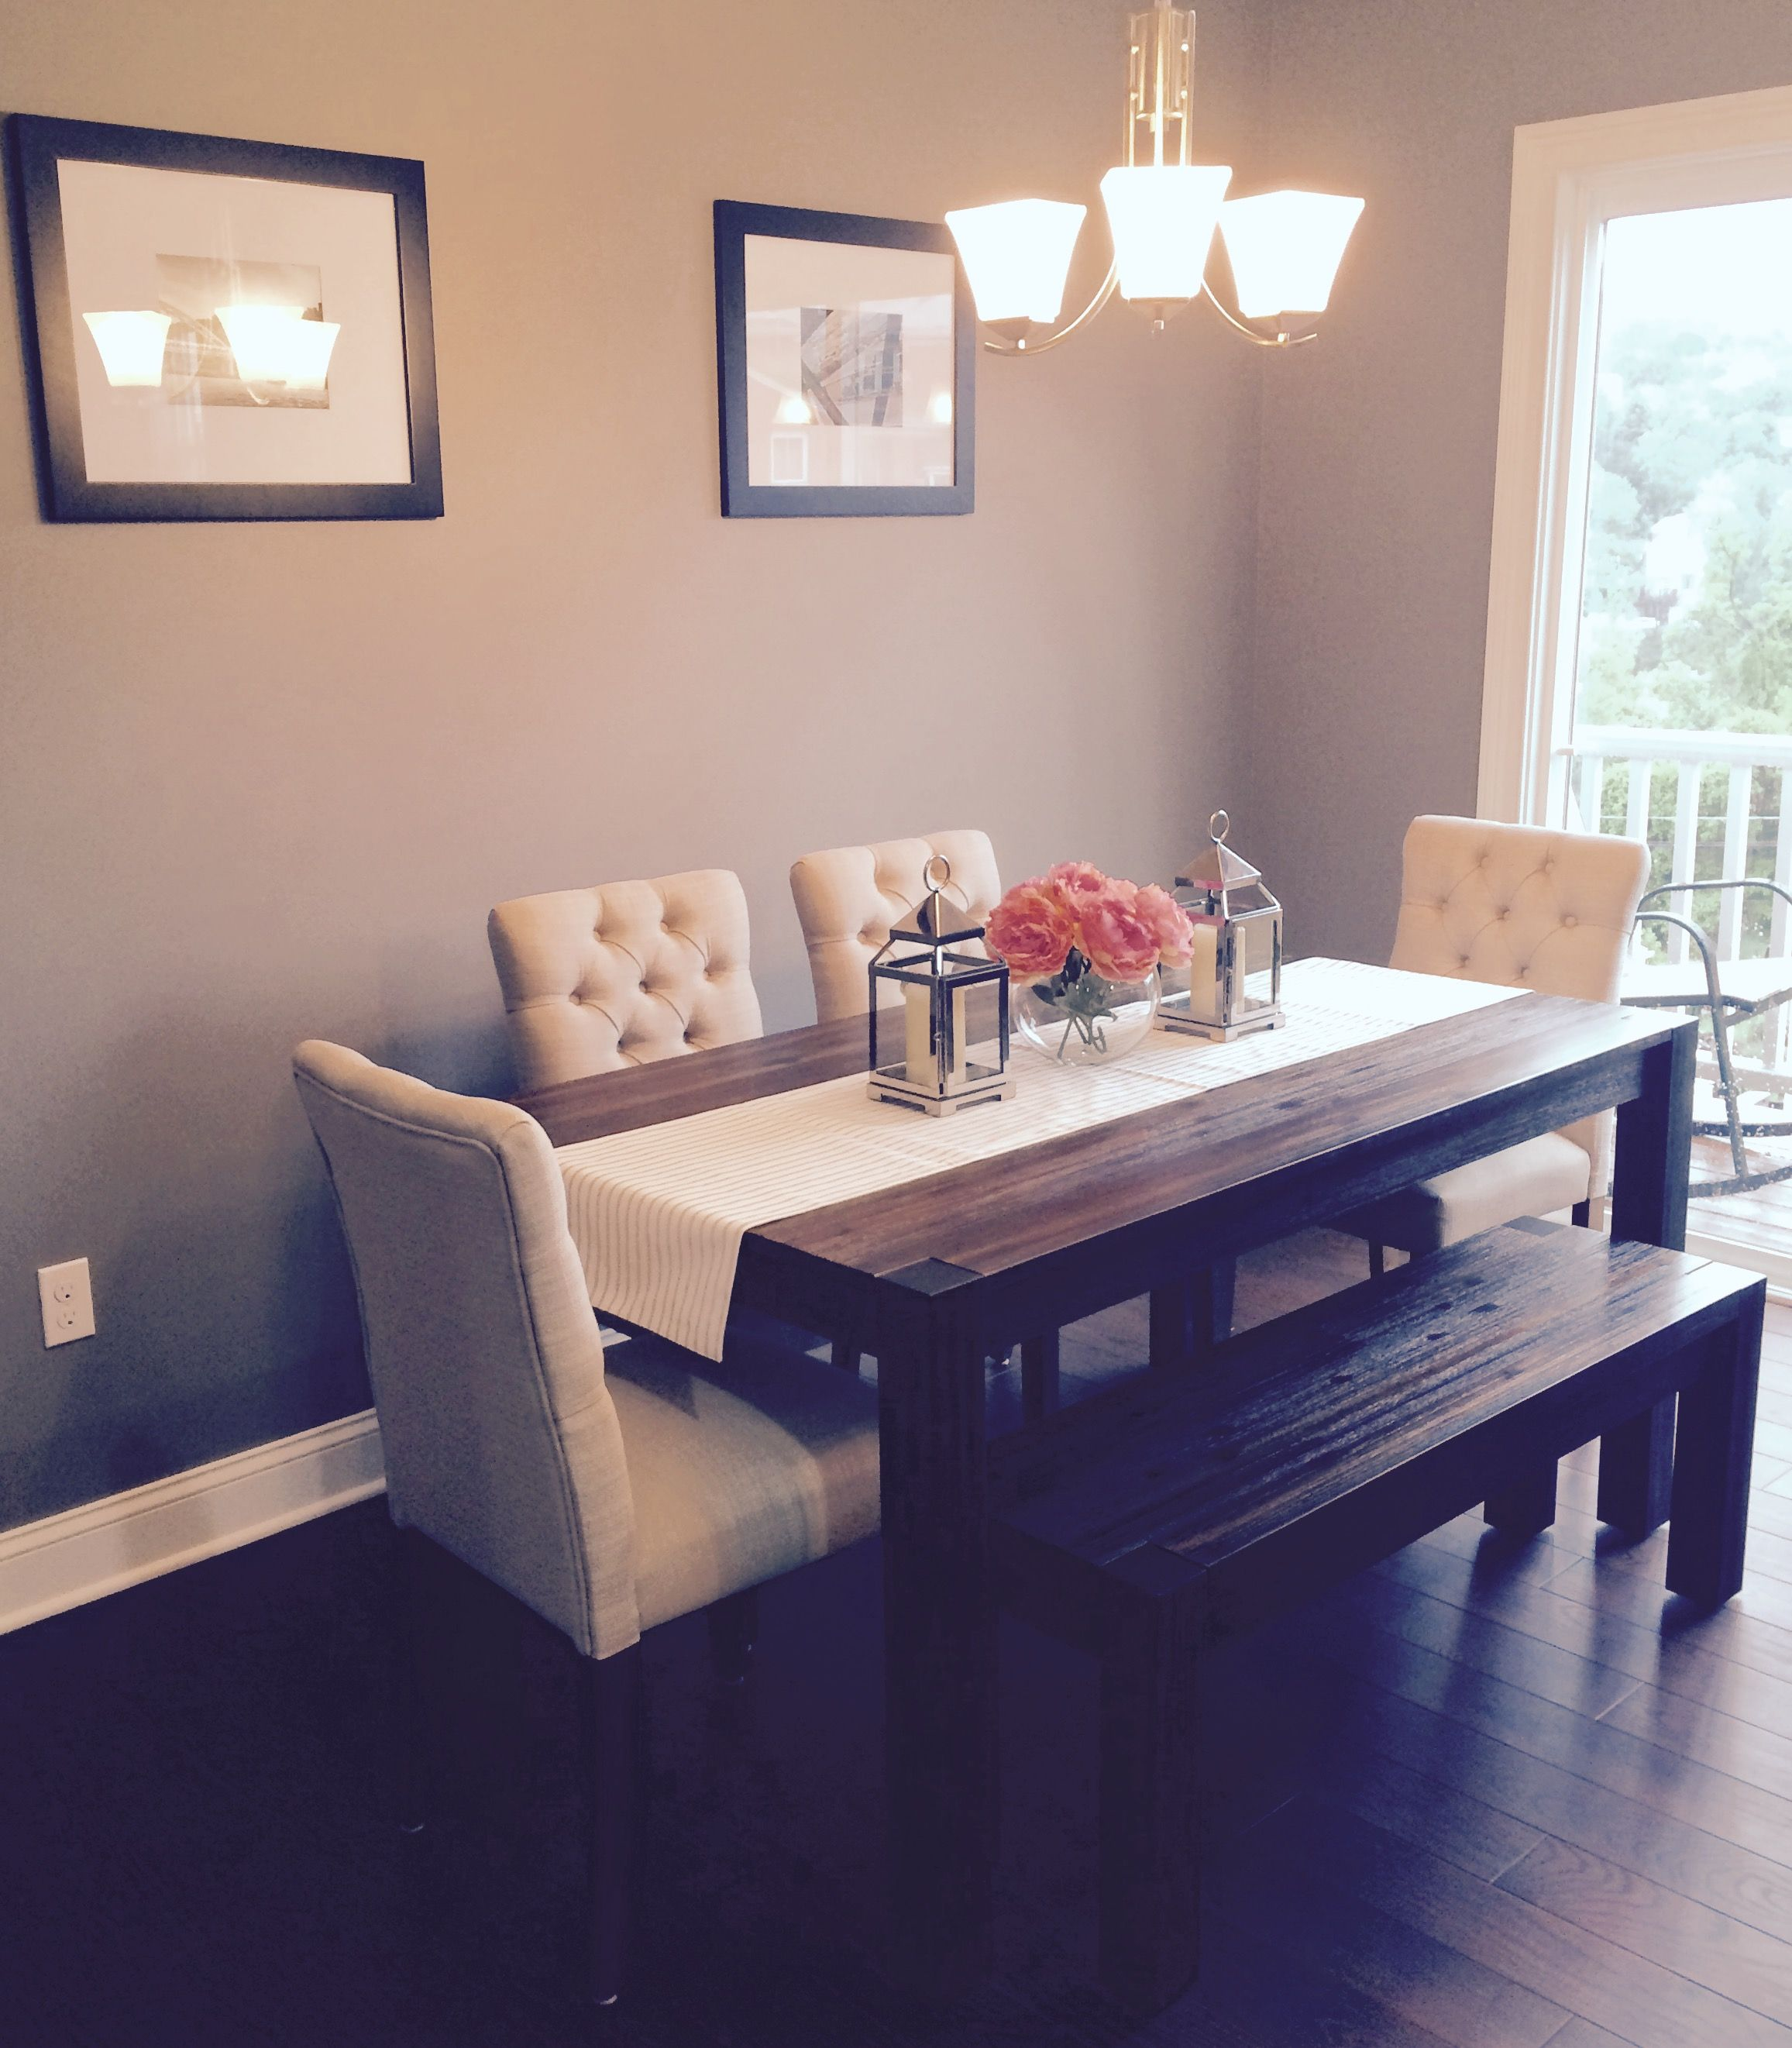 Dining room: Avondale (Macy\'s) table & bench with fabric chairs from ...